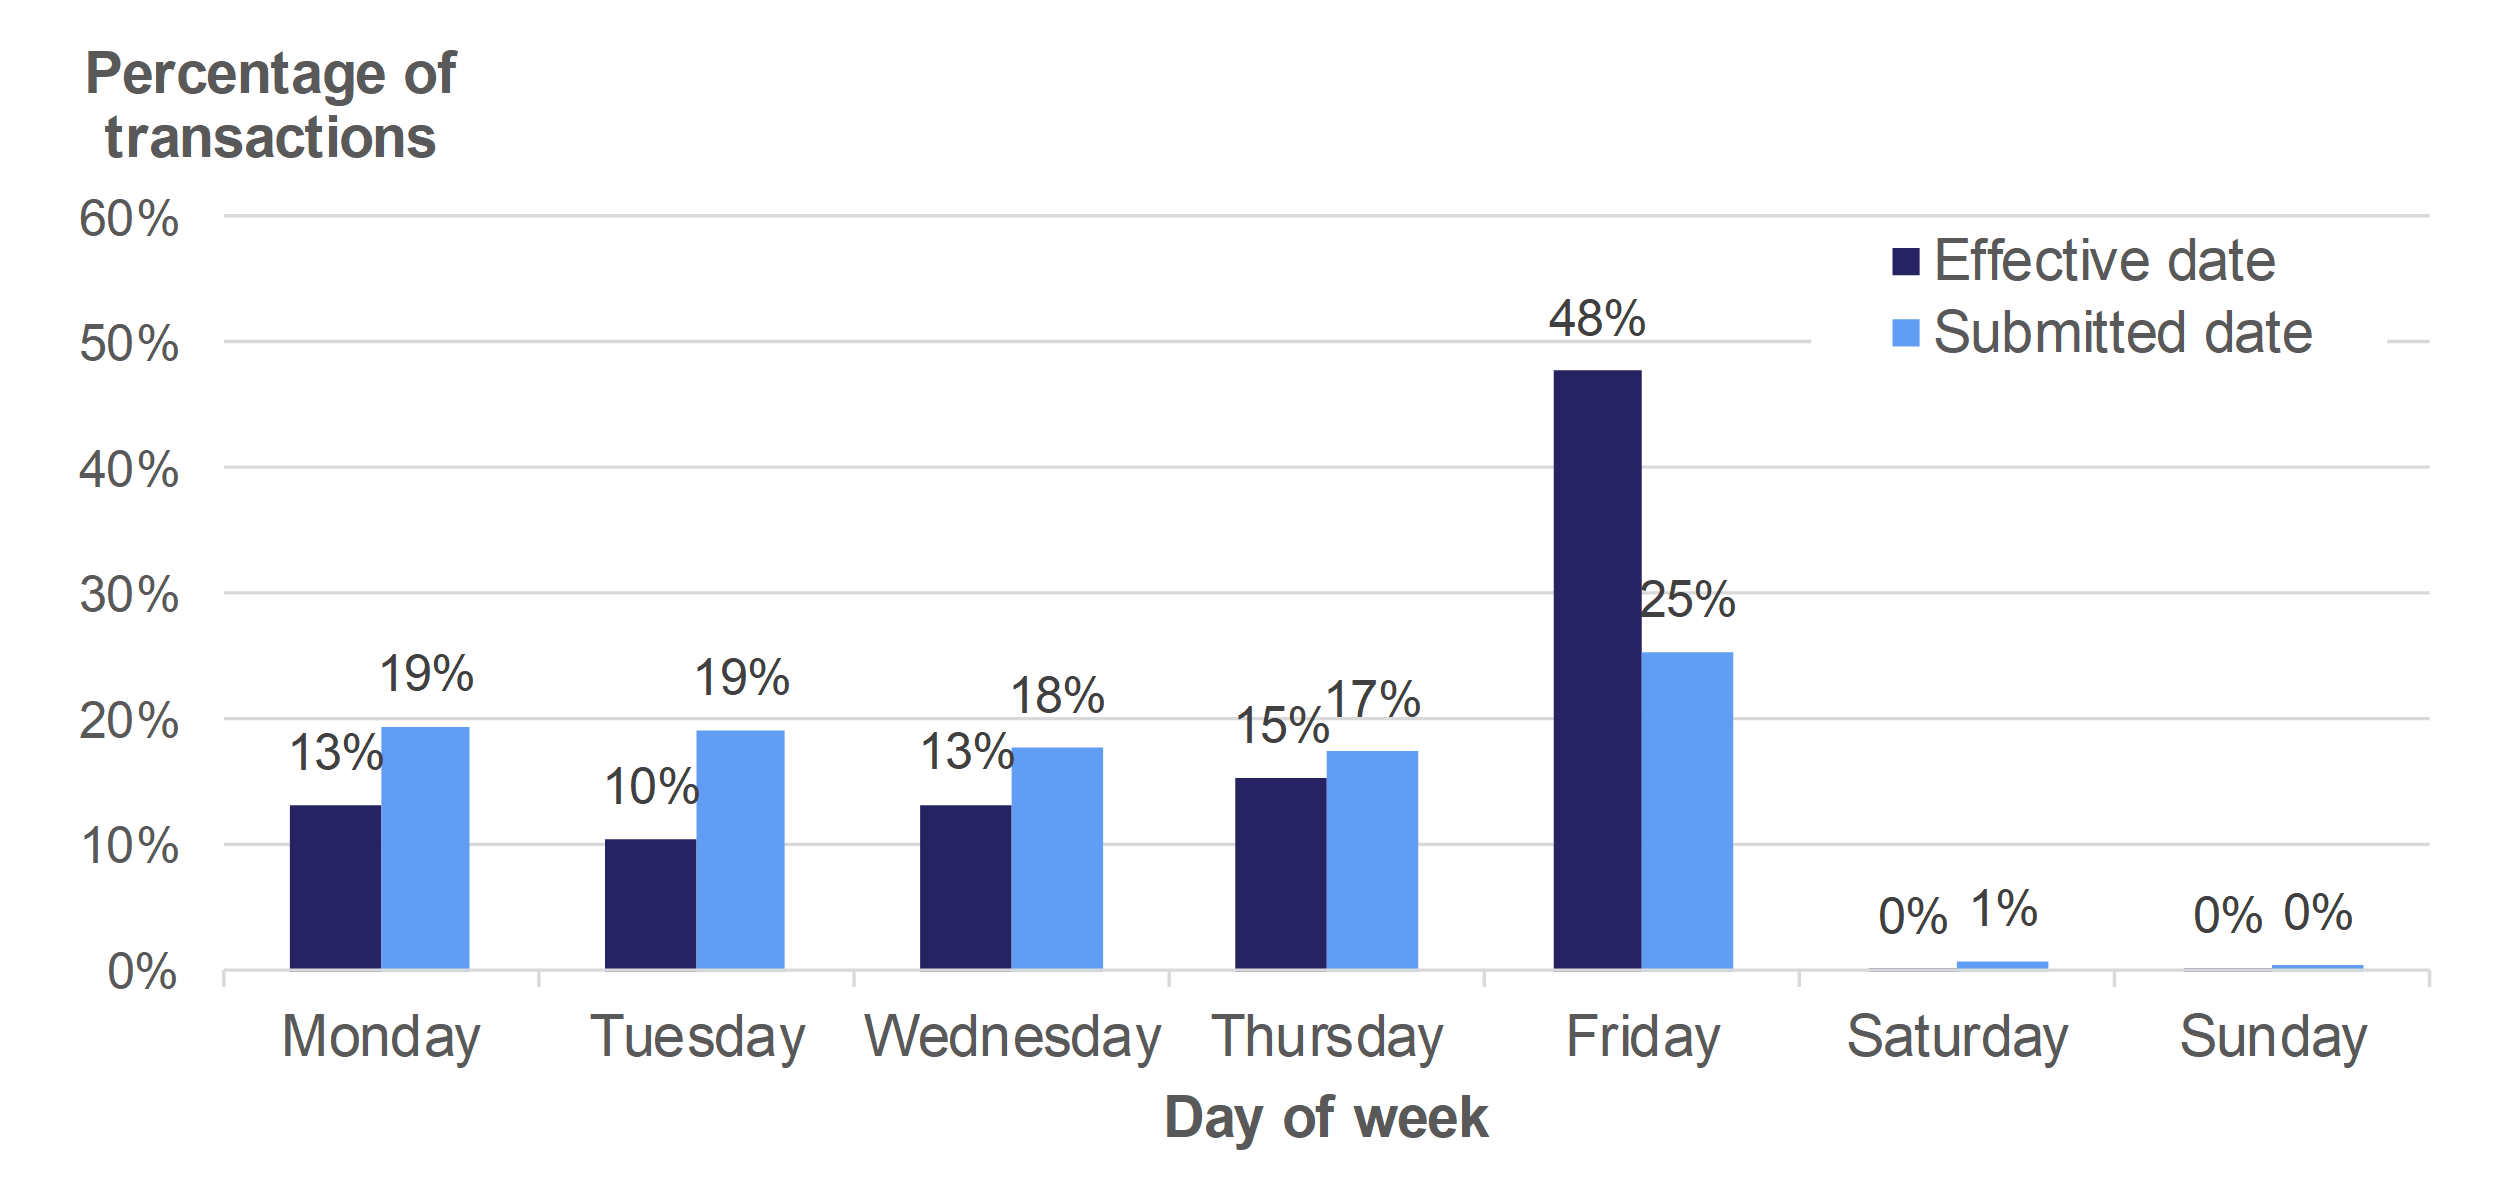 Figure 10.8 shows the percentage of transactions which became effective and which were submitted on the different days of the week. The data relates to transactions which were effective in April 2018 to March 2019, and transactions submitted to the WRA between April 2018 and March 2019.